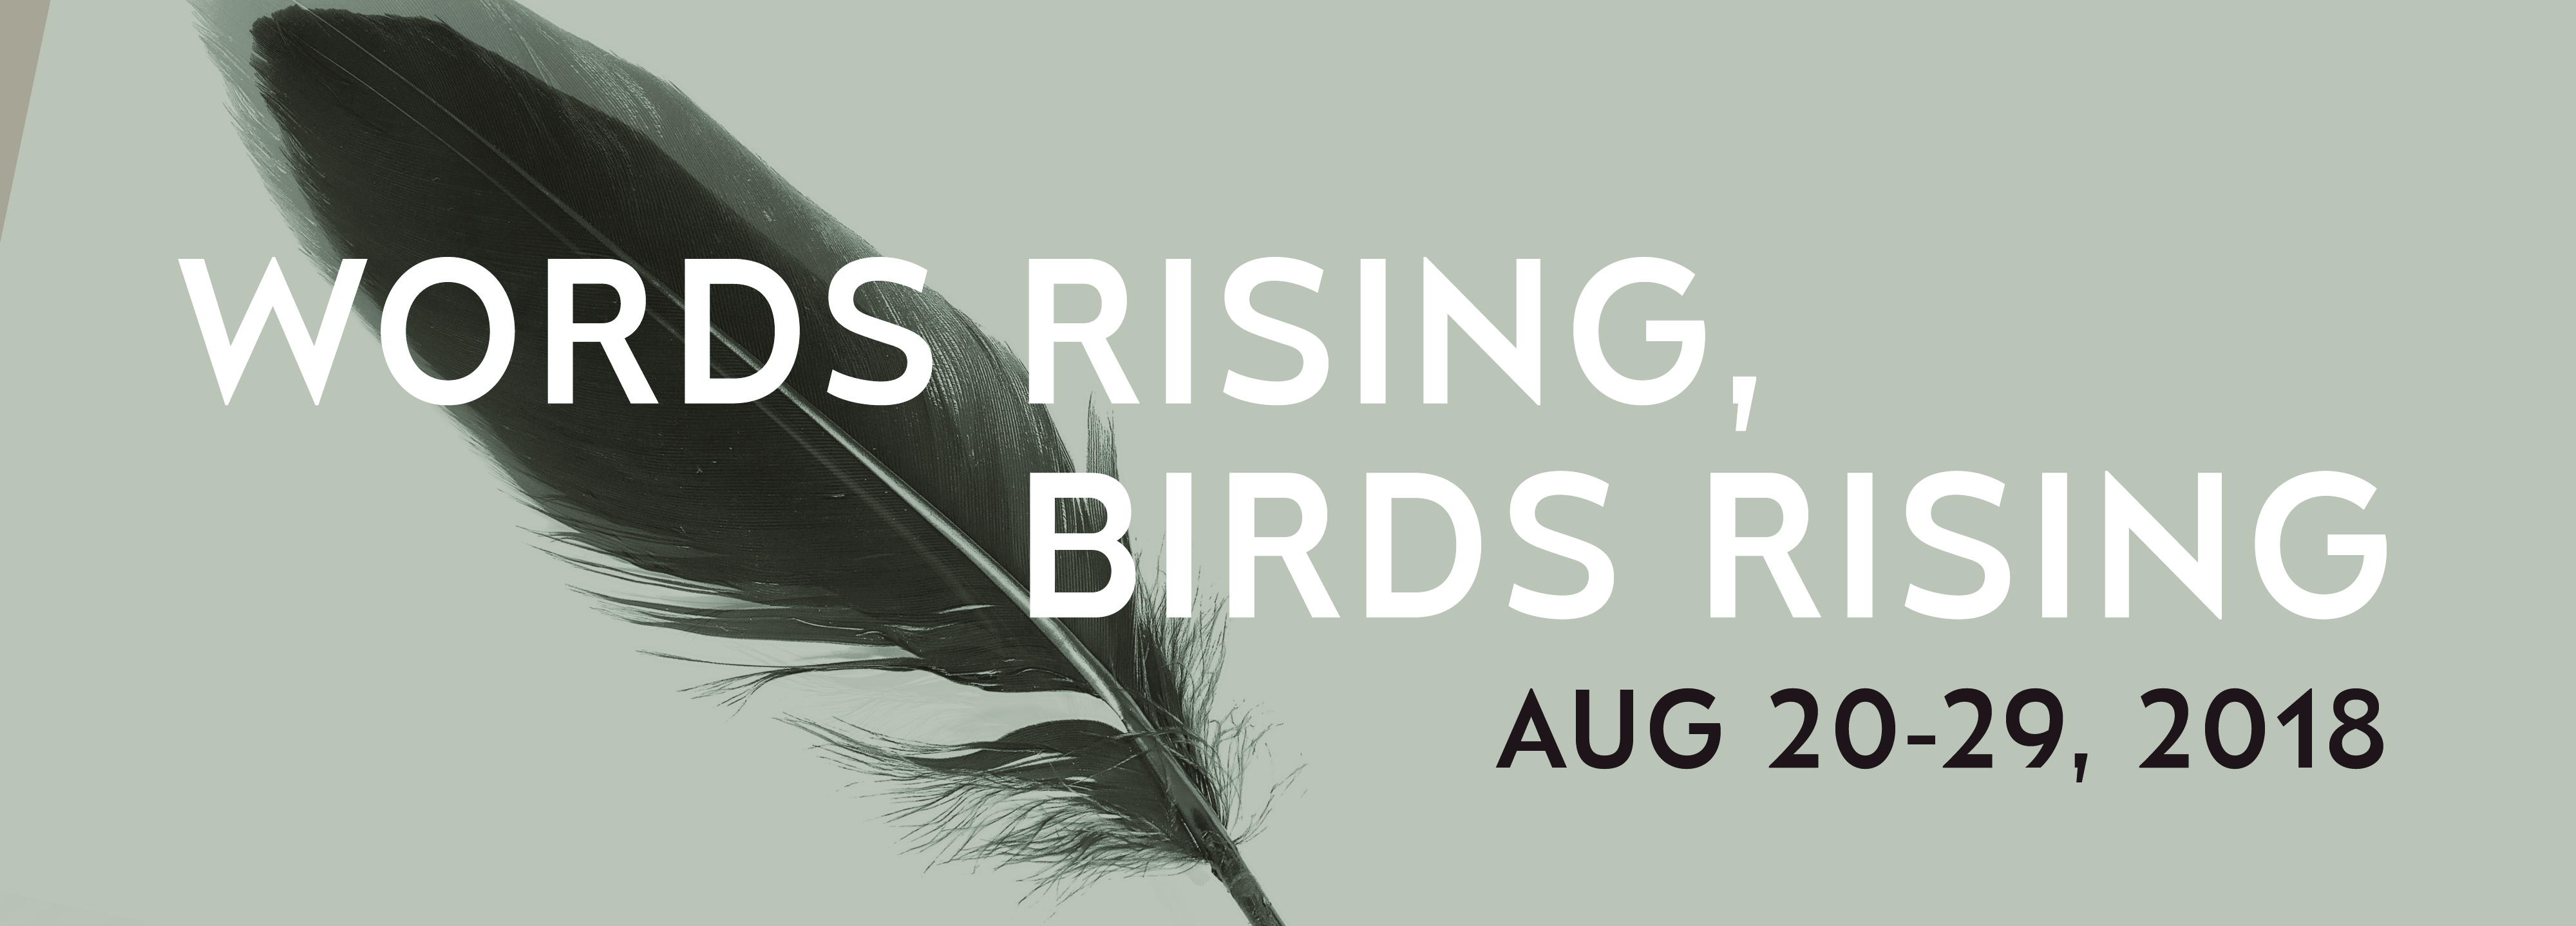 Words Rising, Birds Rising